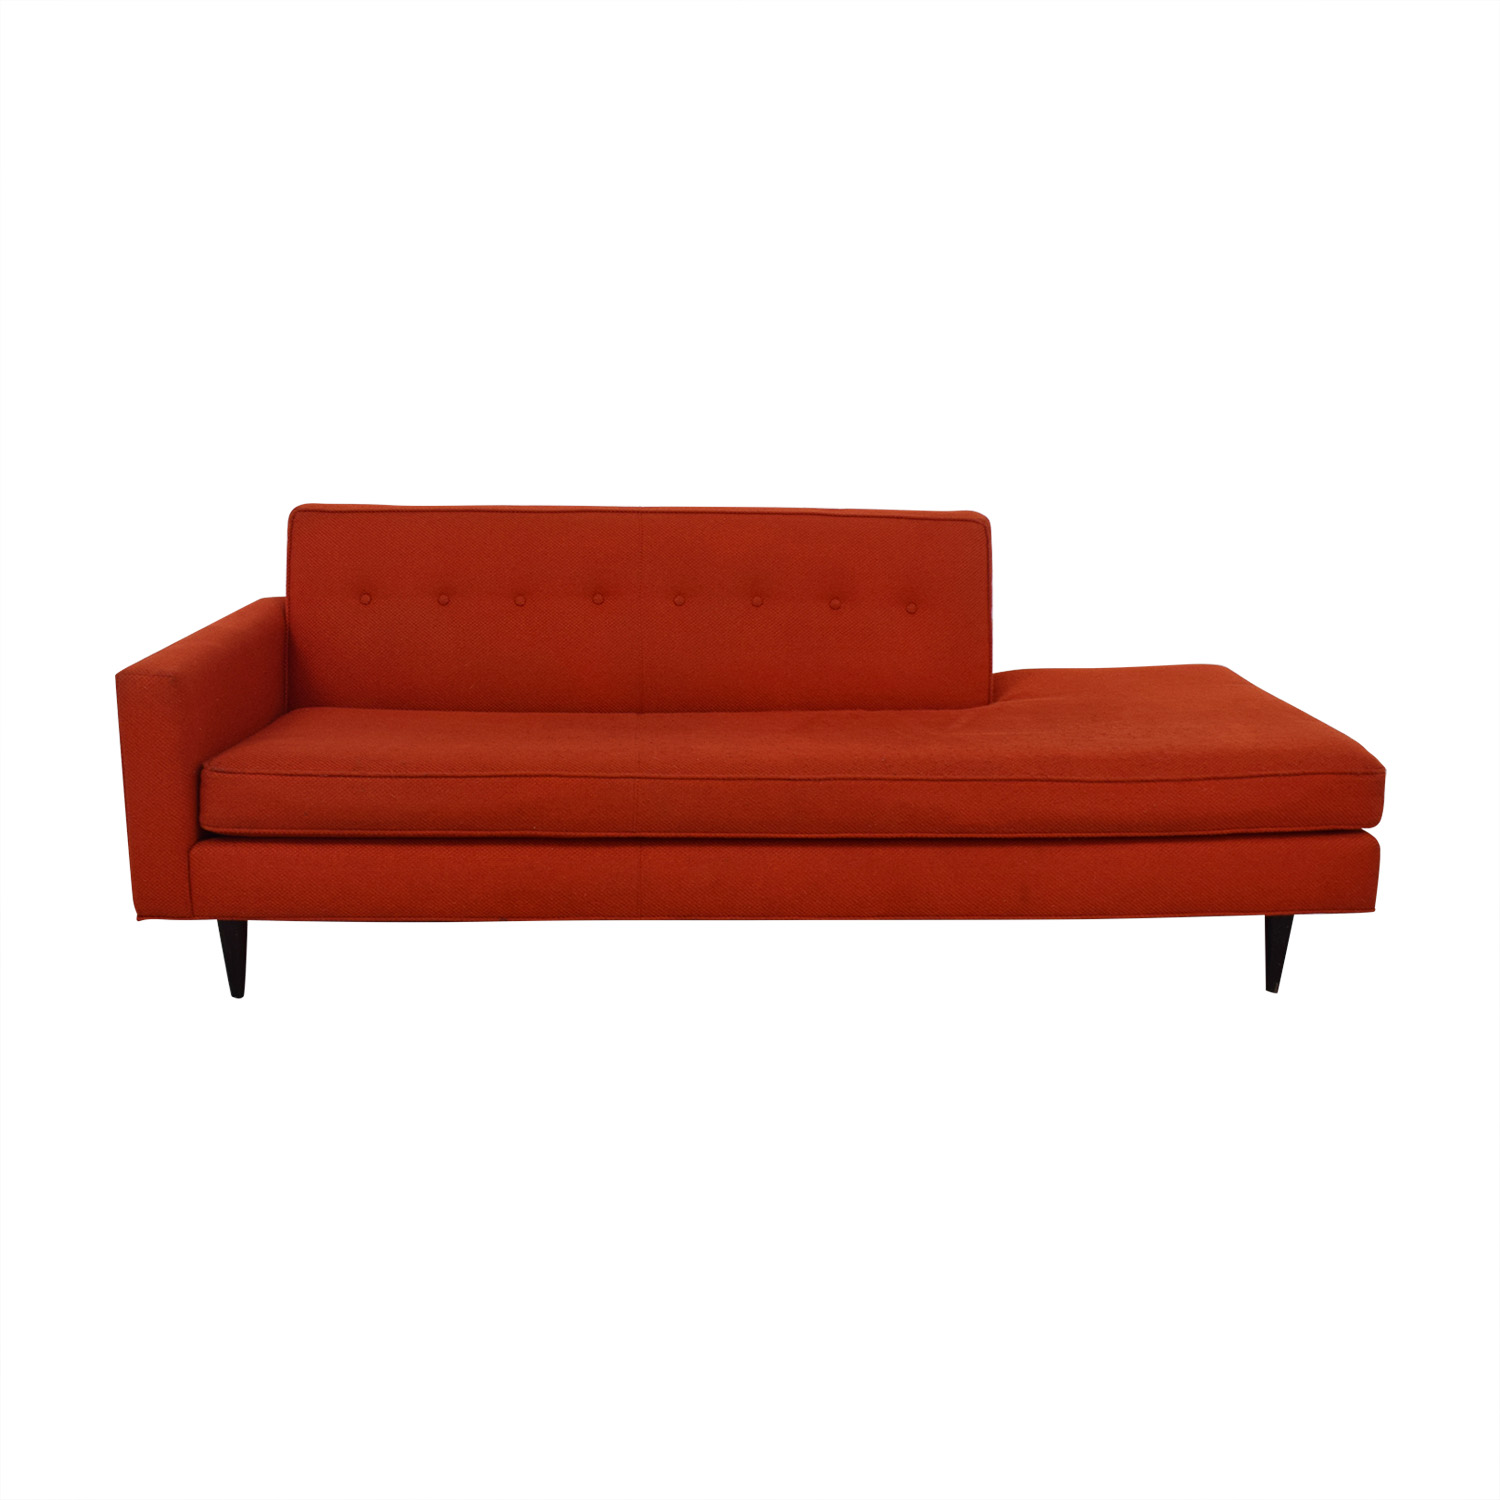 shop Design Within Reach Design Within Reach Bantam Studio Sofa online